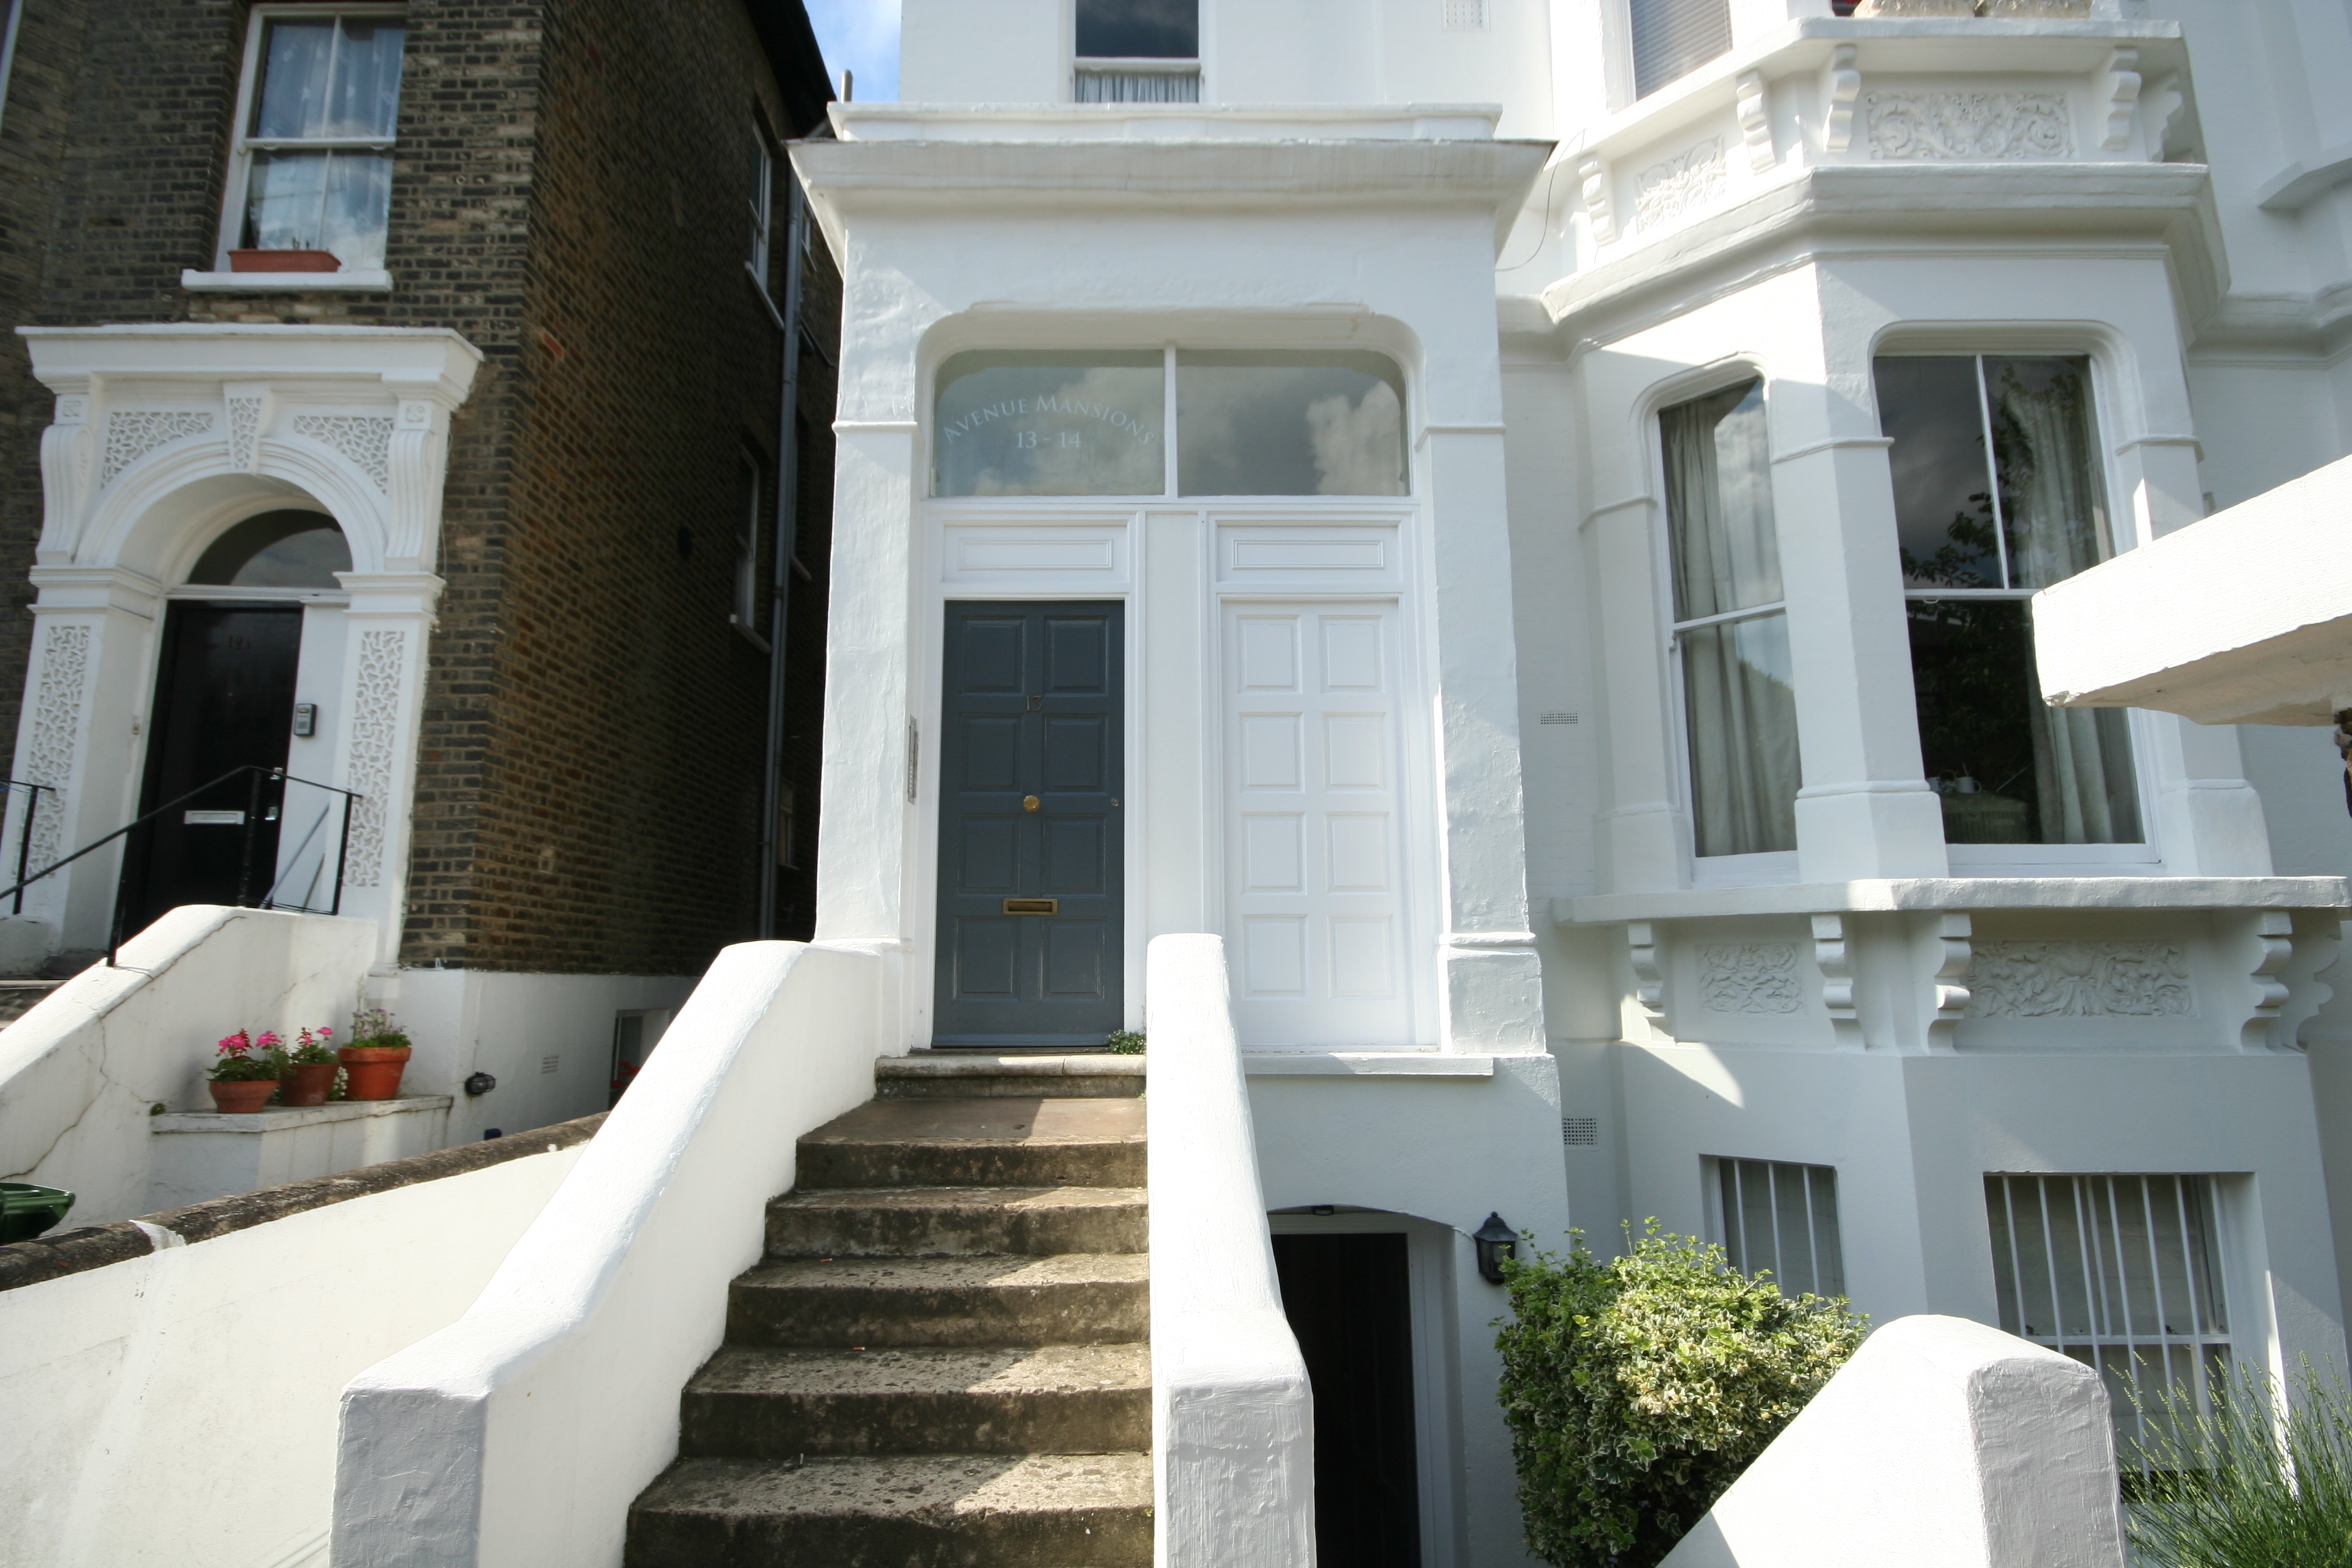 BLACKHEATH GROVE, SE3